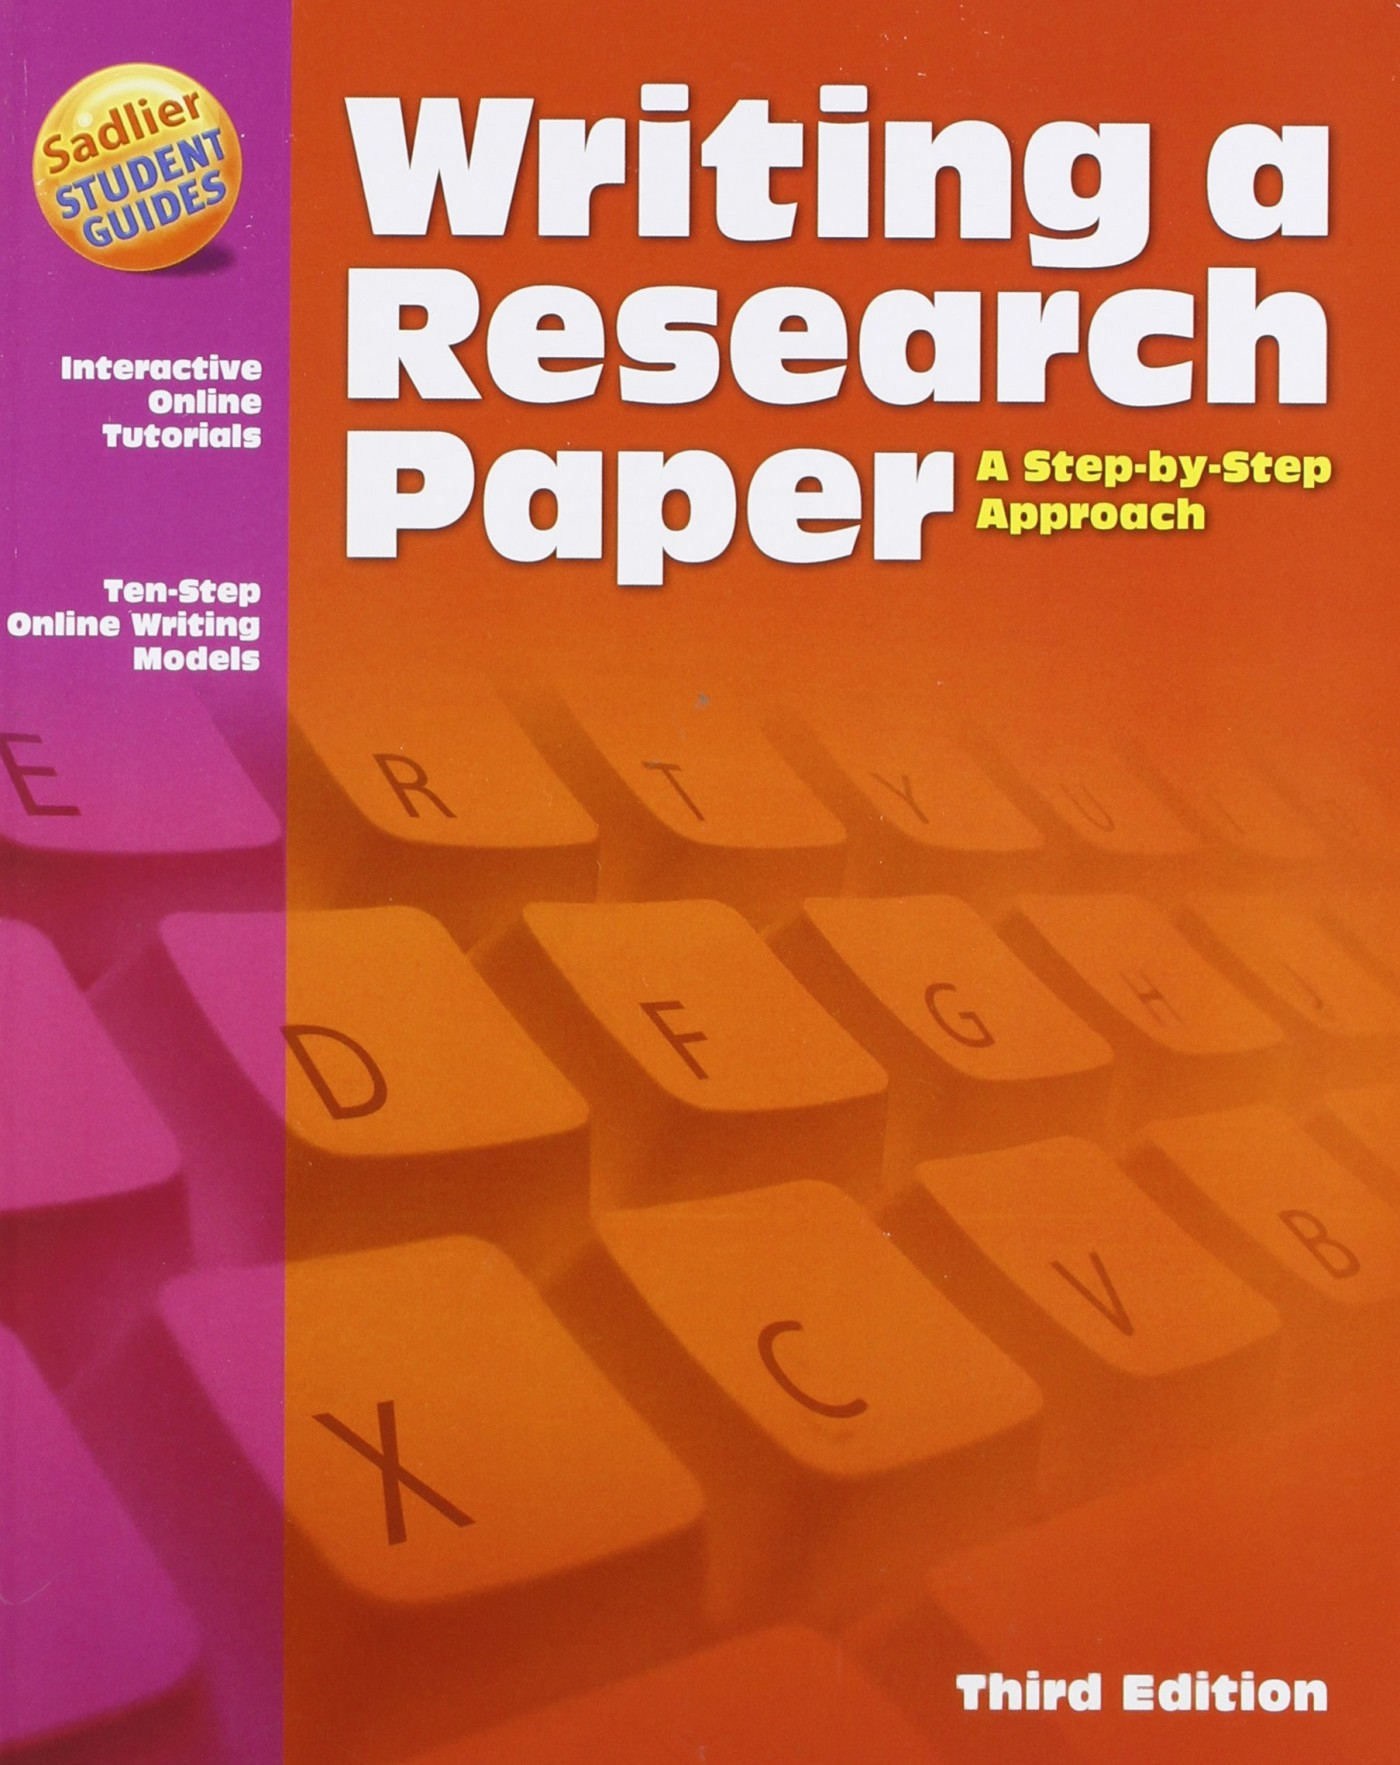 011 81uqfpthpml Help With Writing Researchs Fantastic Research Papers Assistance A Paper 1400